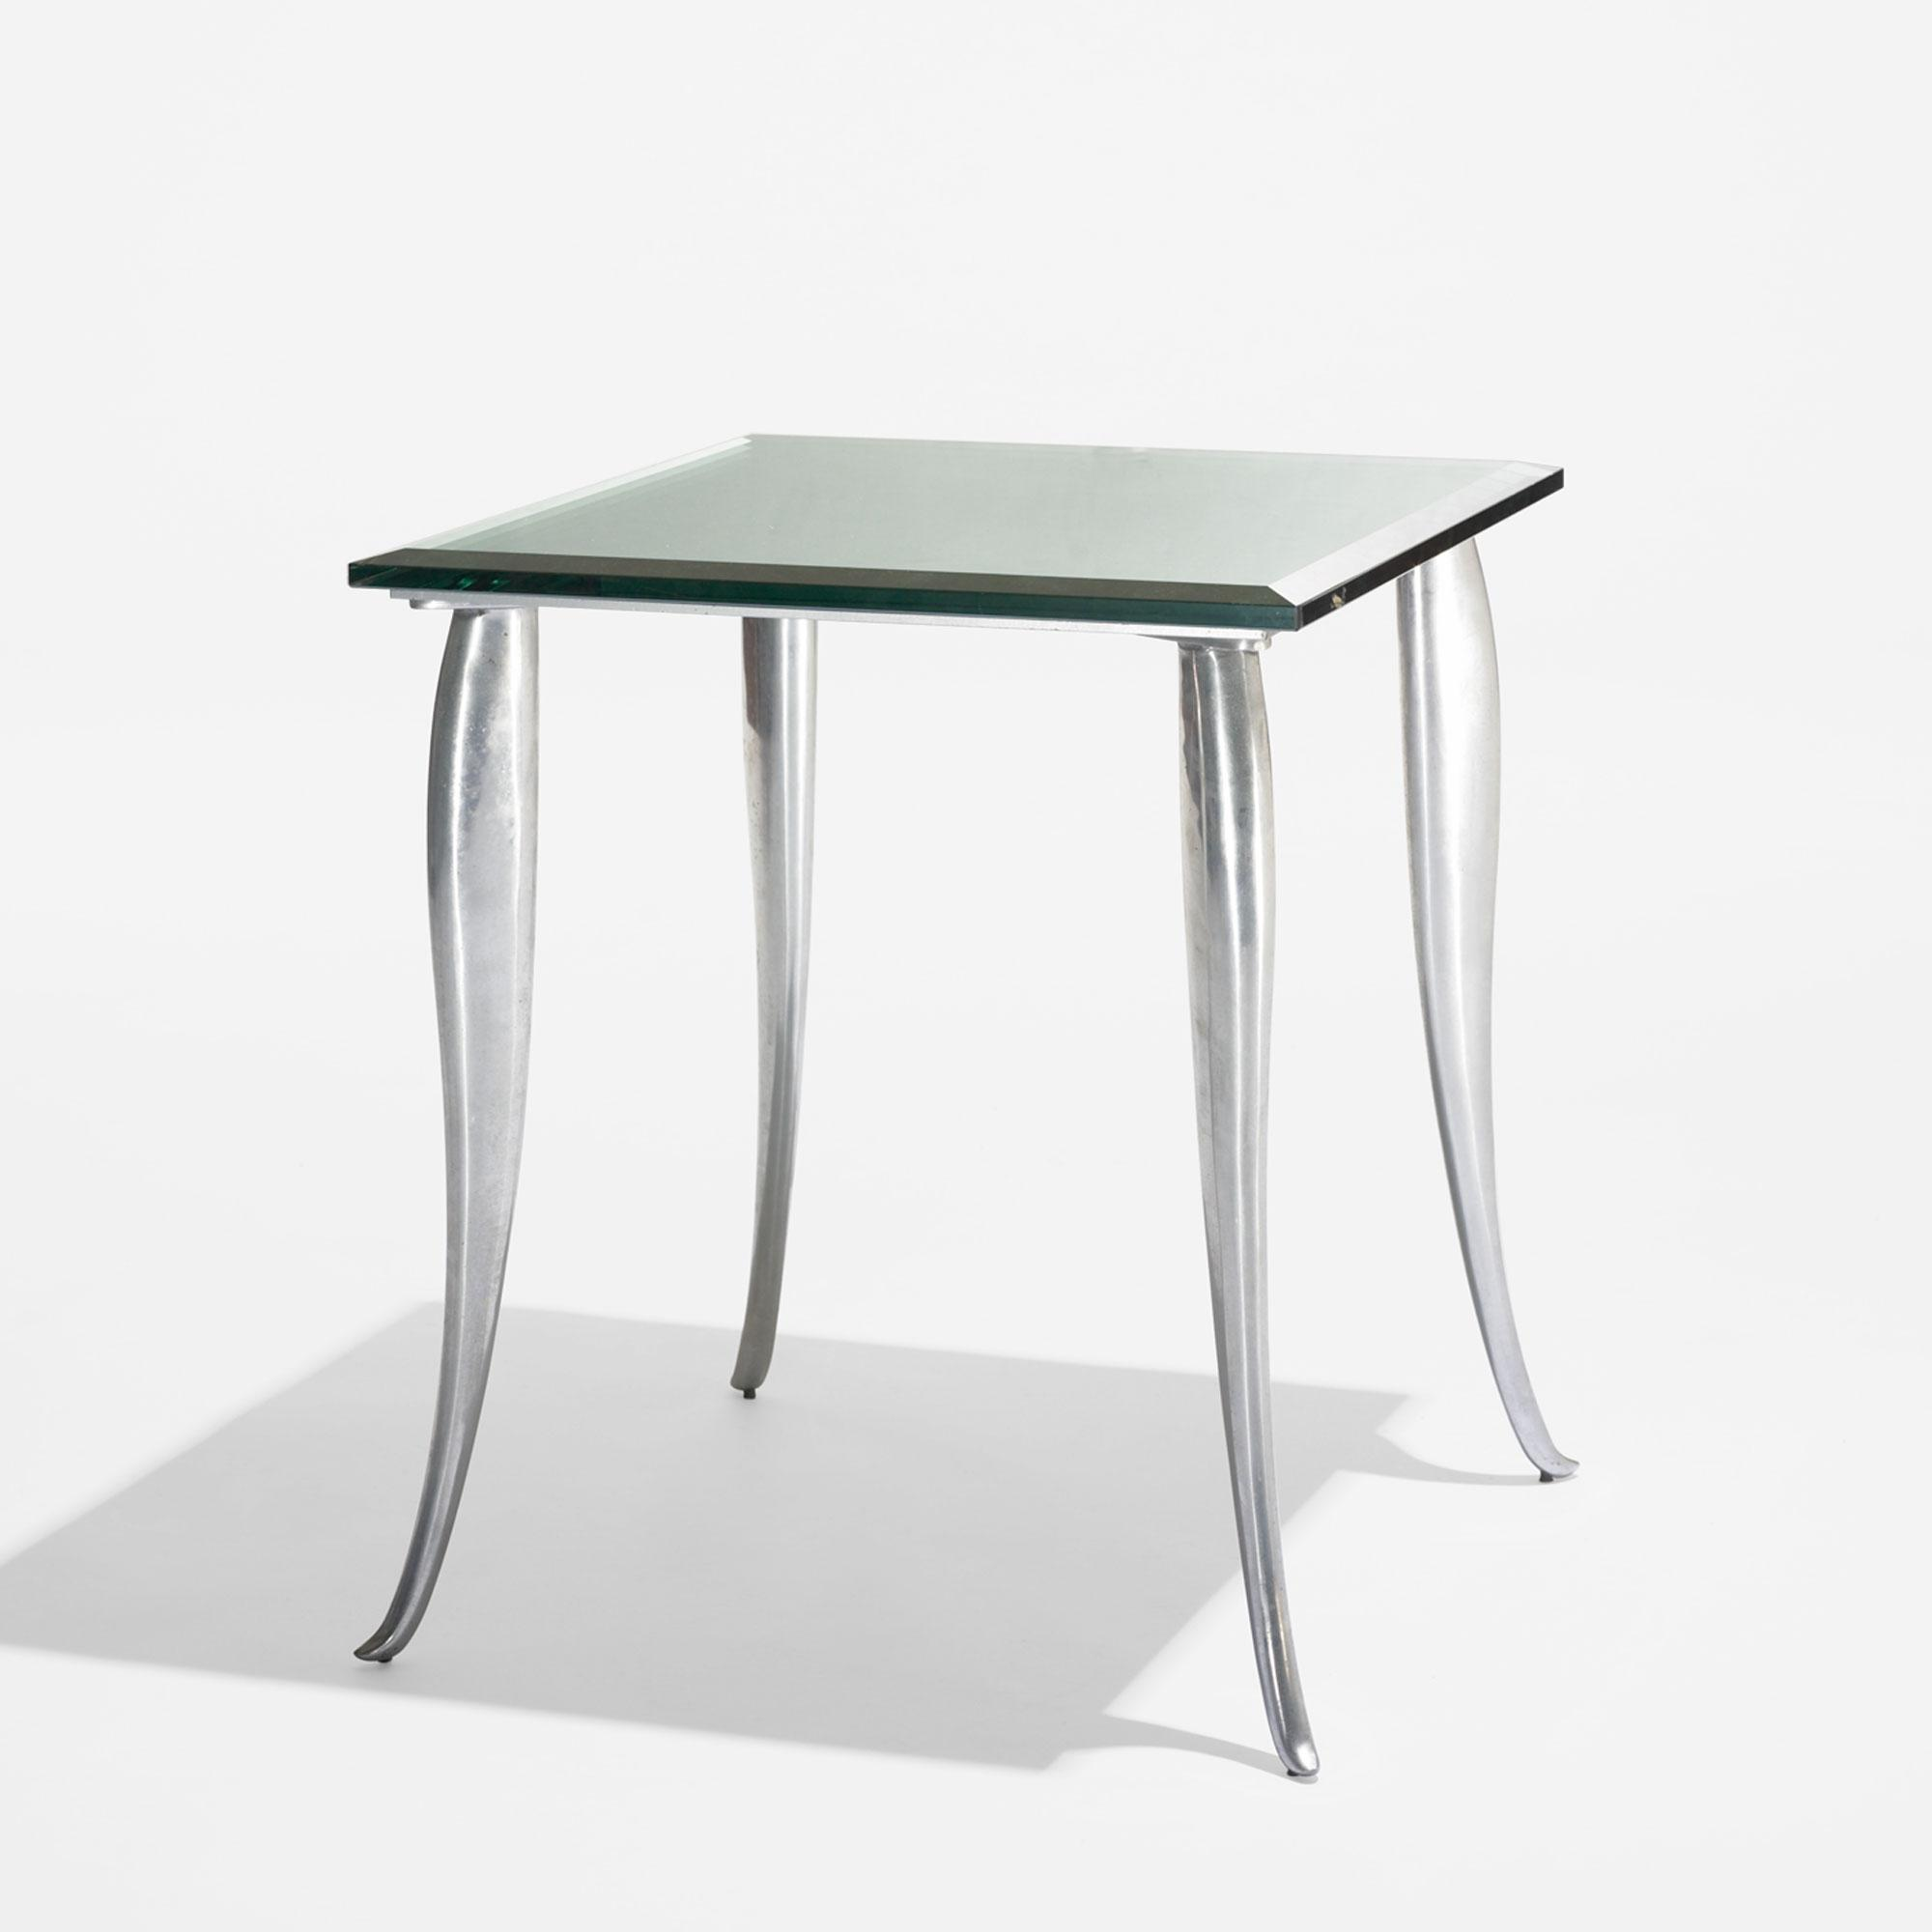 Philippe starck prototype table for the royalton hotel for Philippe starck tables